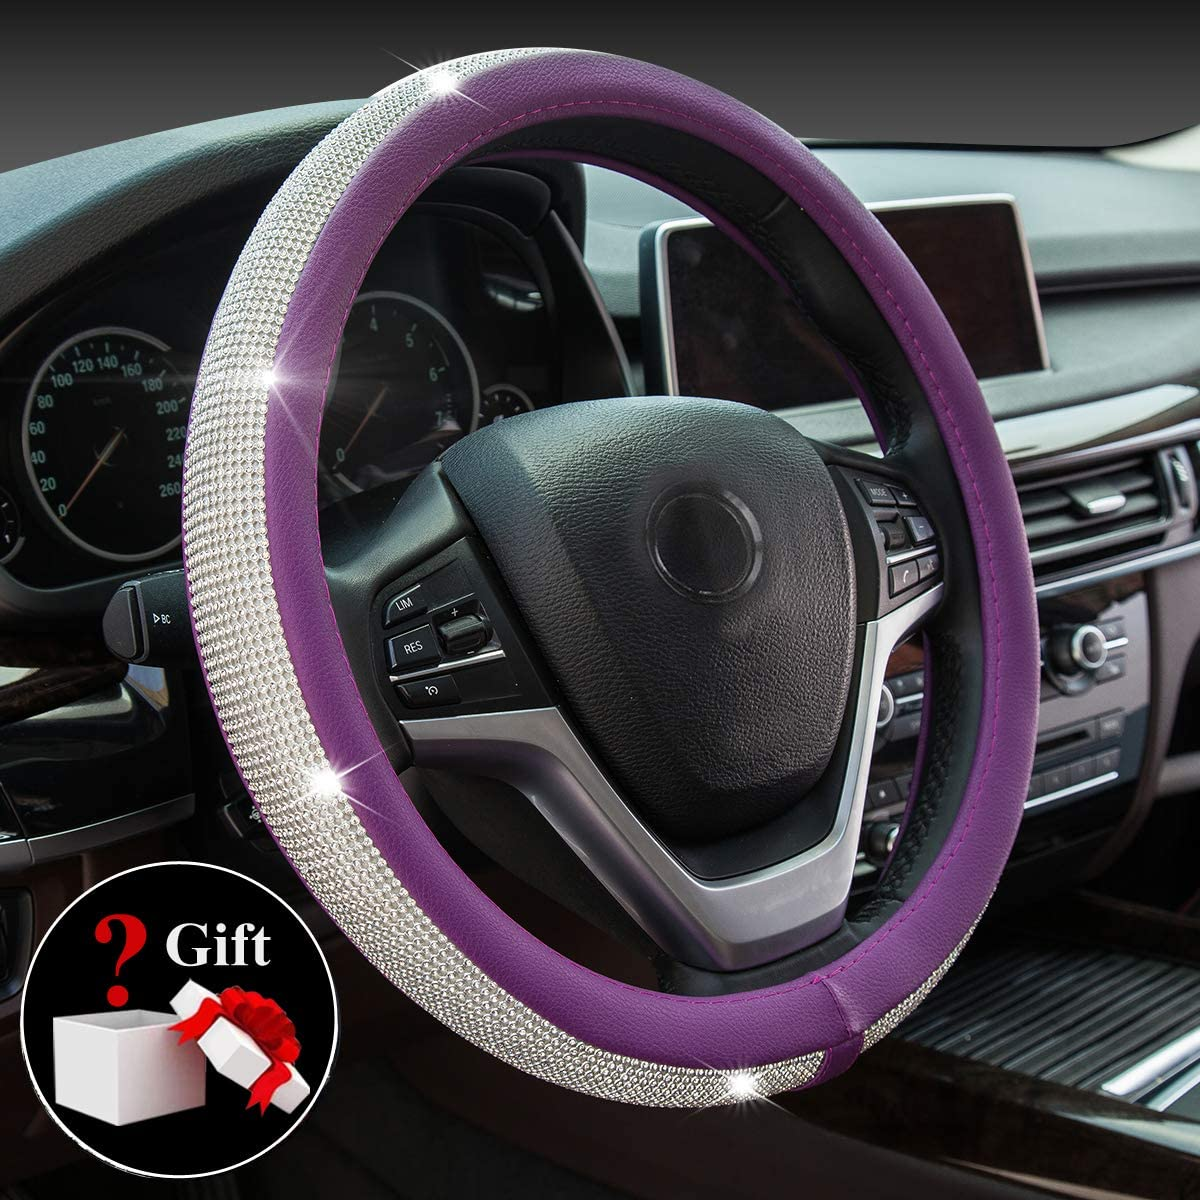 New Diamond Leather Steering Wheel Cover with Bling Bling Crystal Rhinestones, Universal Fit 15 Inch Anti-Slip Wheel Protector for Women Girls,Purple